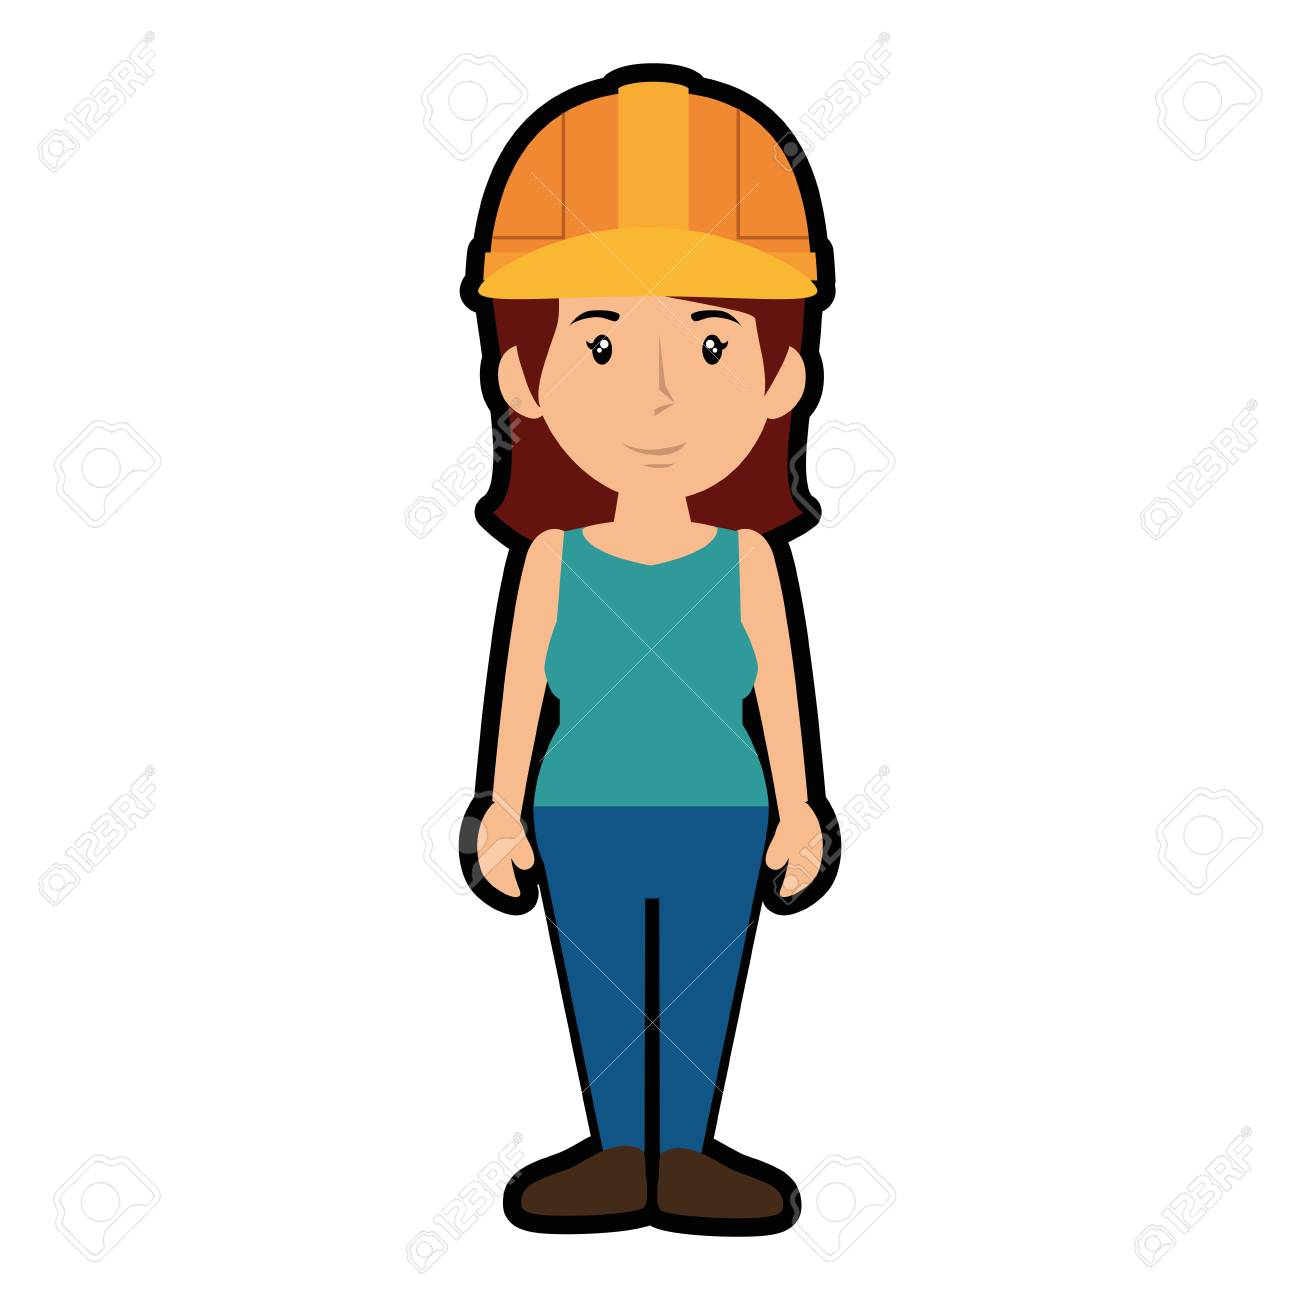 Image result for CARTOON WOMAN  SAFETY HELMET